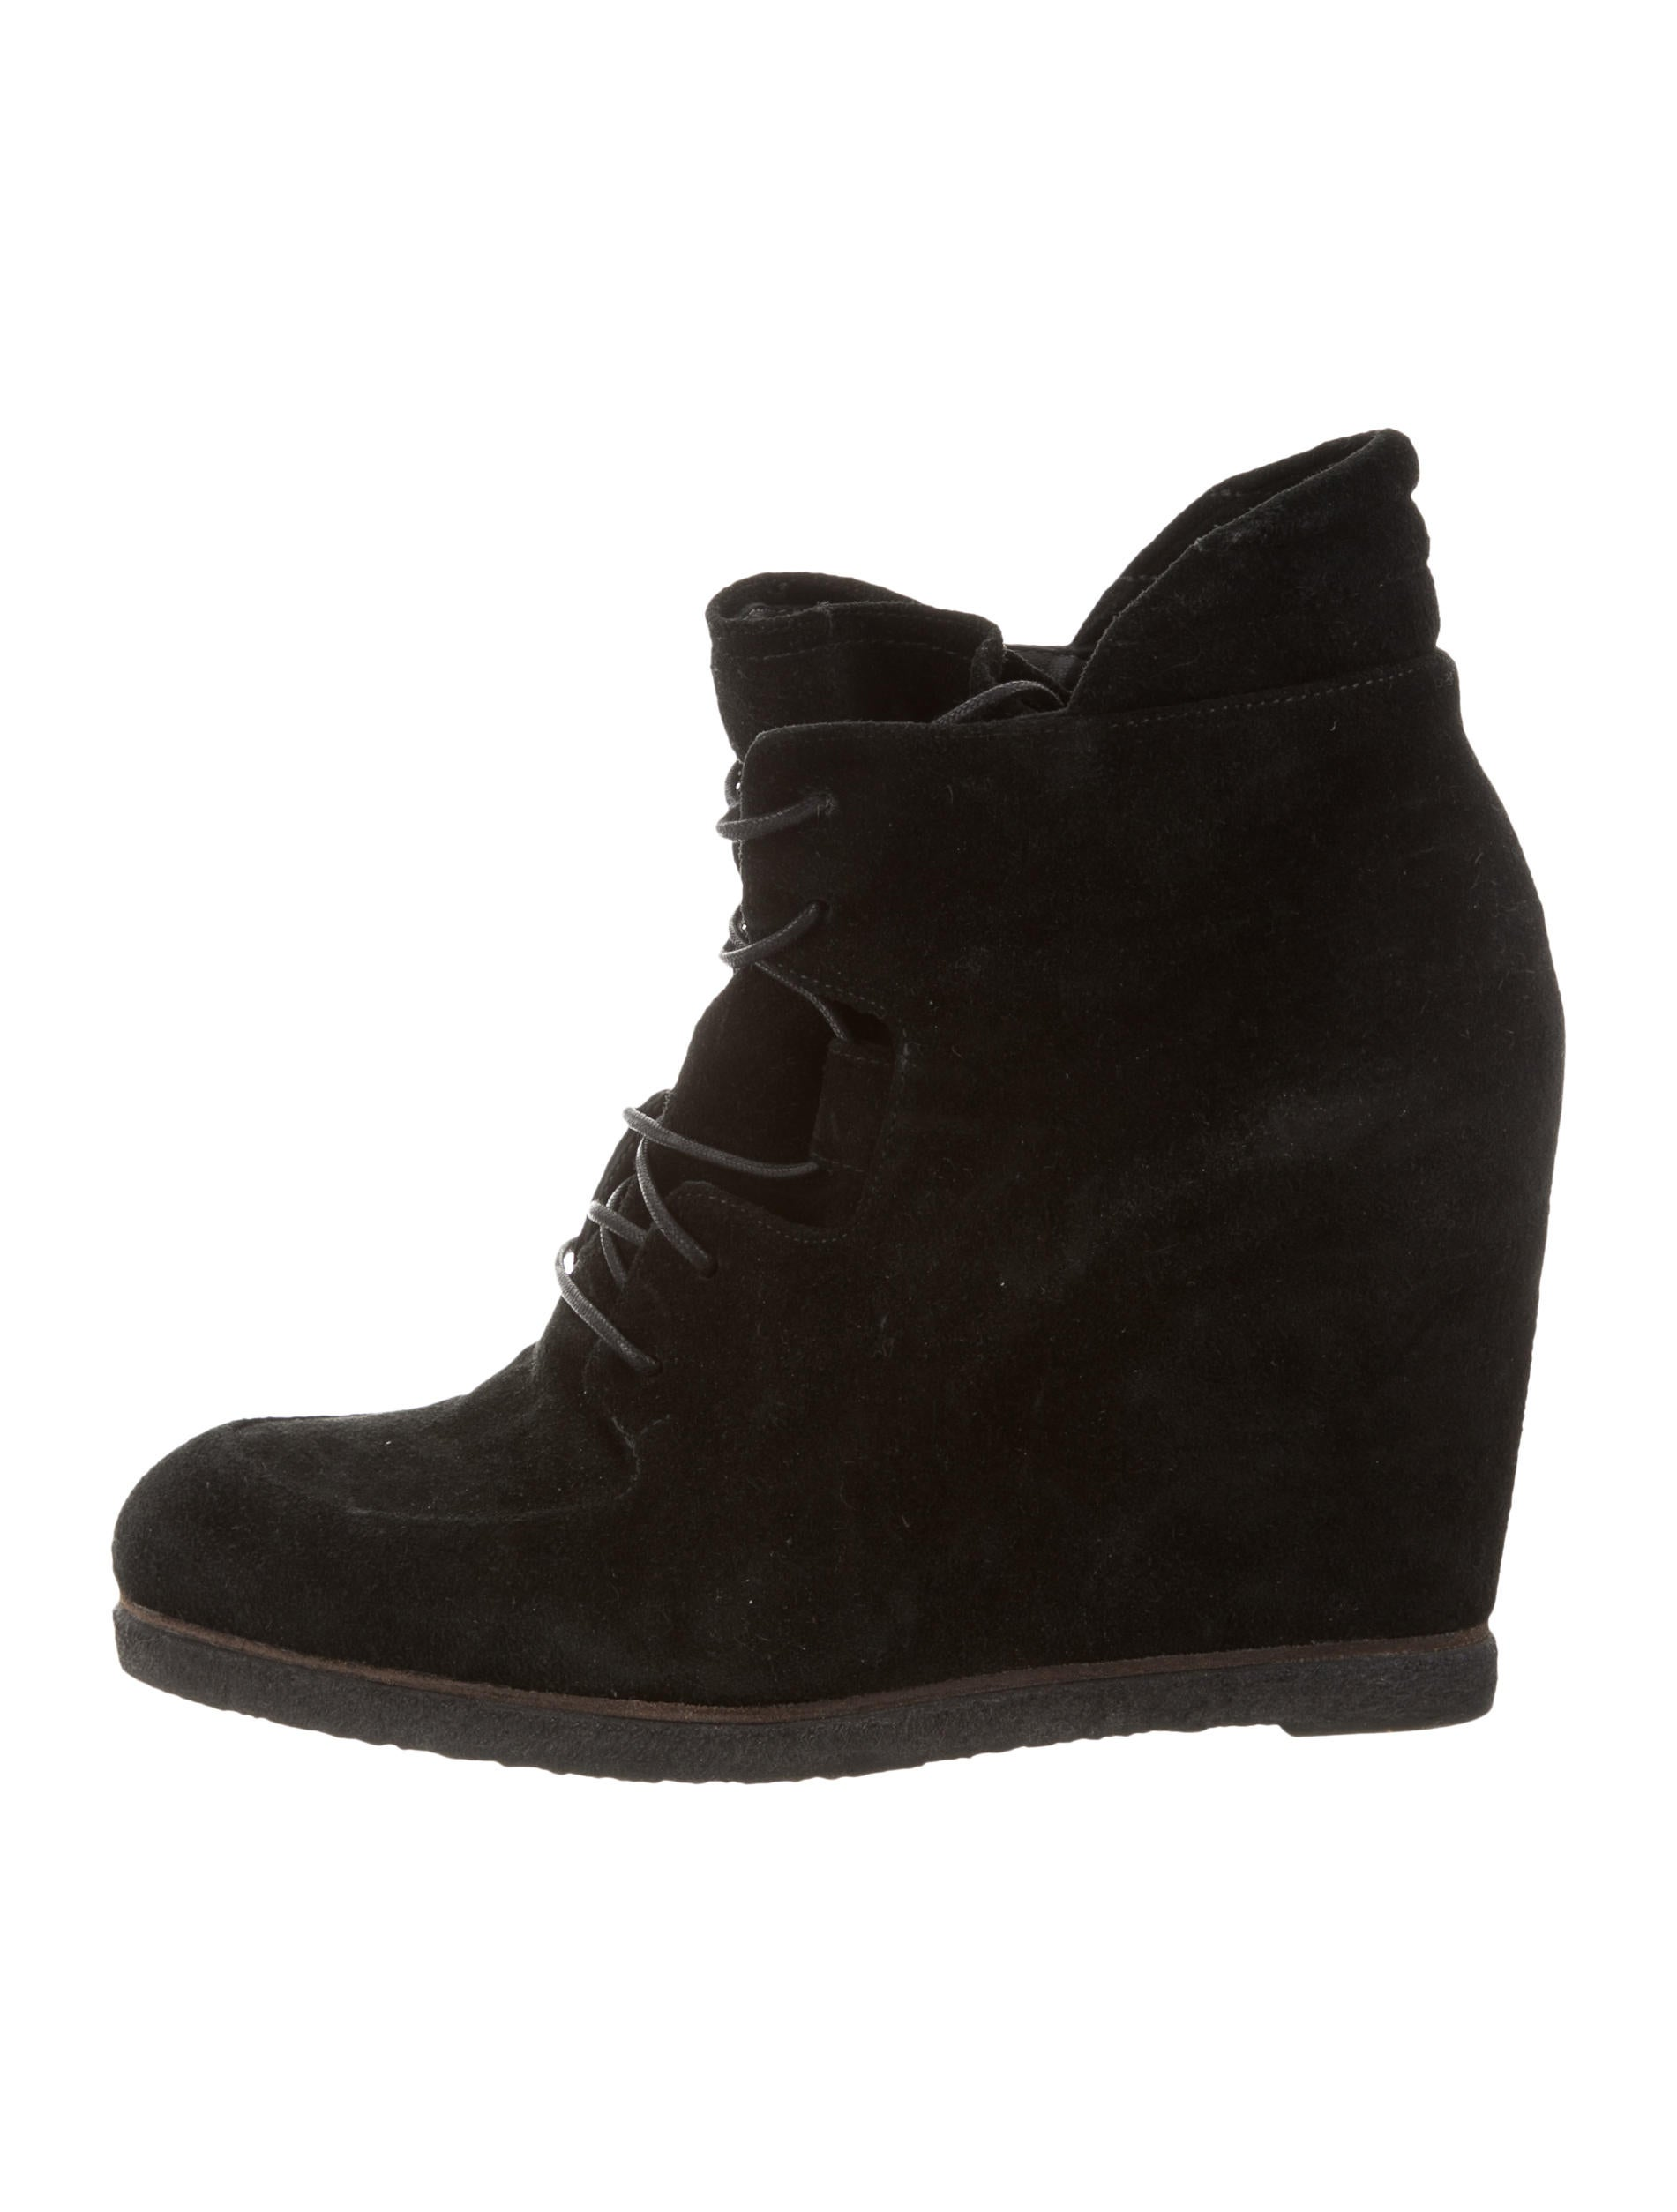 stuart weitzman suede wedge ankle boots shoes wsu33431